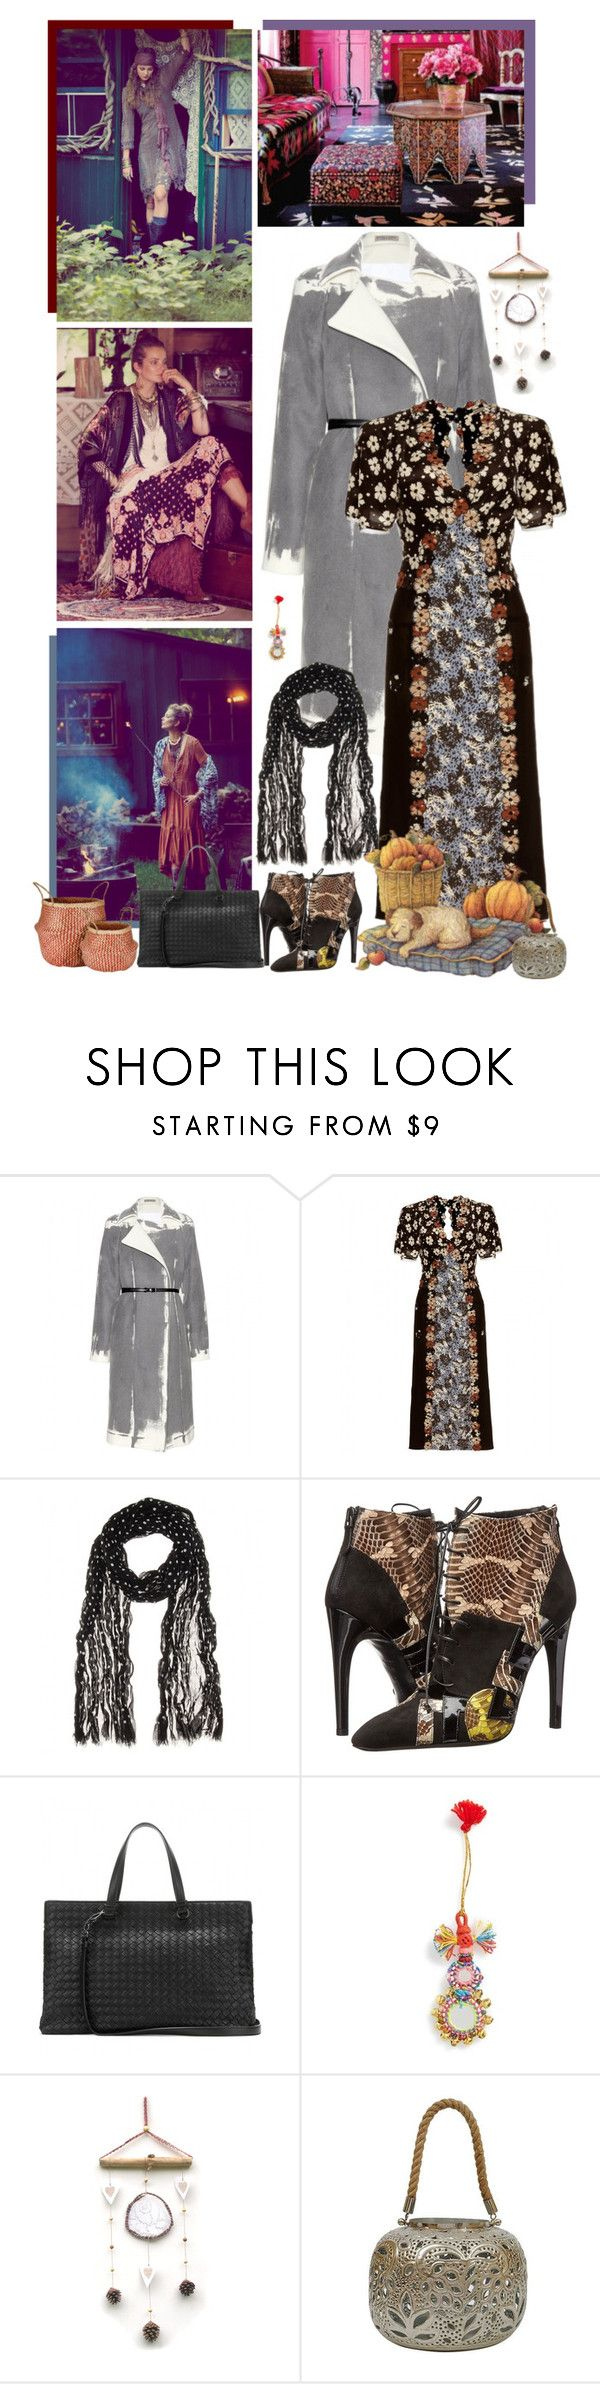 """""""She who is wise never tries to revise what is past and gone"""" by fashionqueen76 ❤ liked on Polyvore featuring Free People, Bottega Veneta, Shiraleah, Dot & Bo and Murmur"""